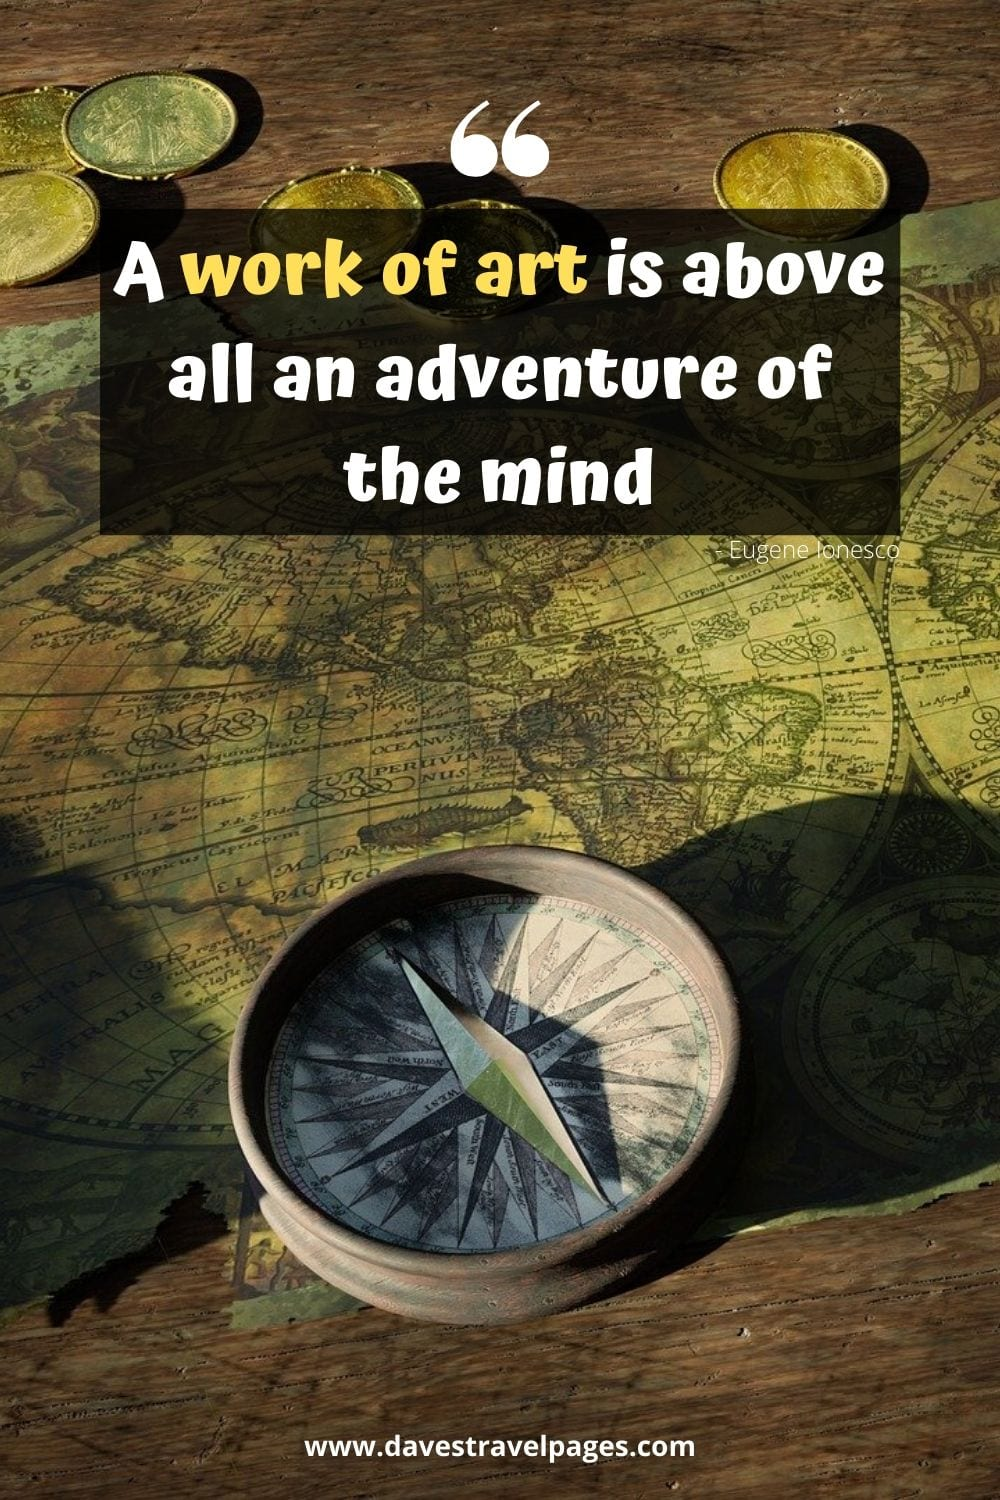 A work of art is above all an adventure of the mind - Eugene Ionesco